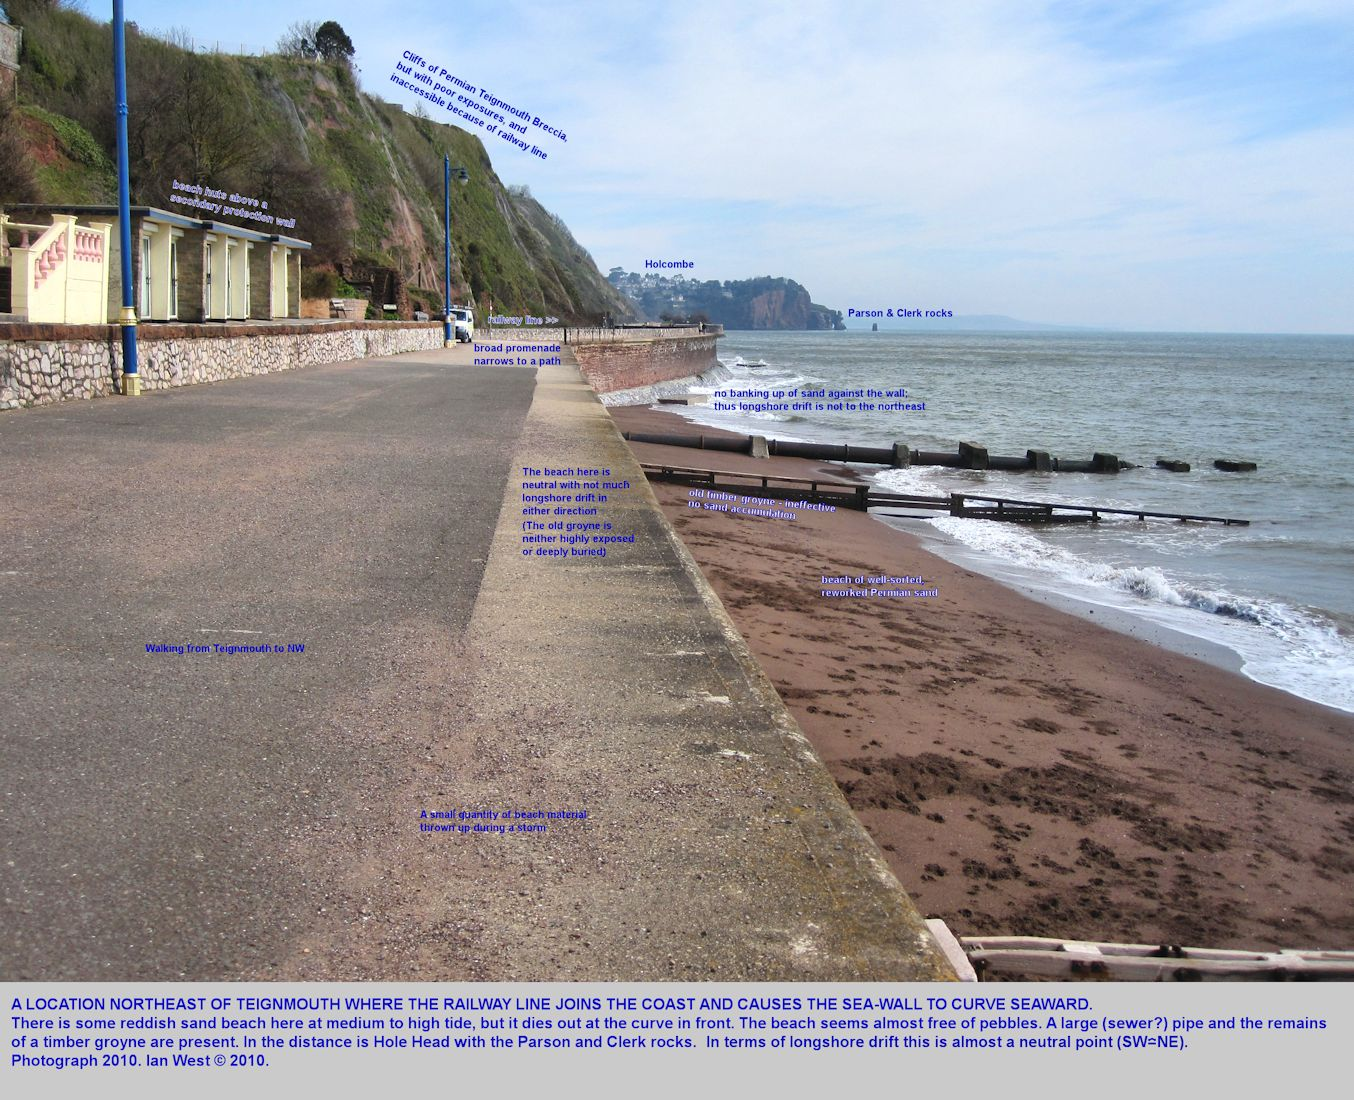 The curving railway line joins the sea-wall at the northeastern part of Teignmouth, Devon, at a place where longshore drift is almost absent, a neutral point